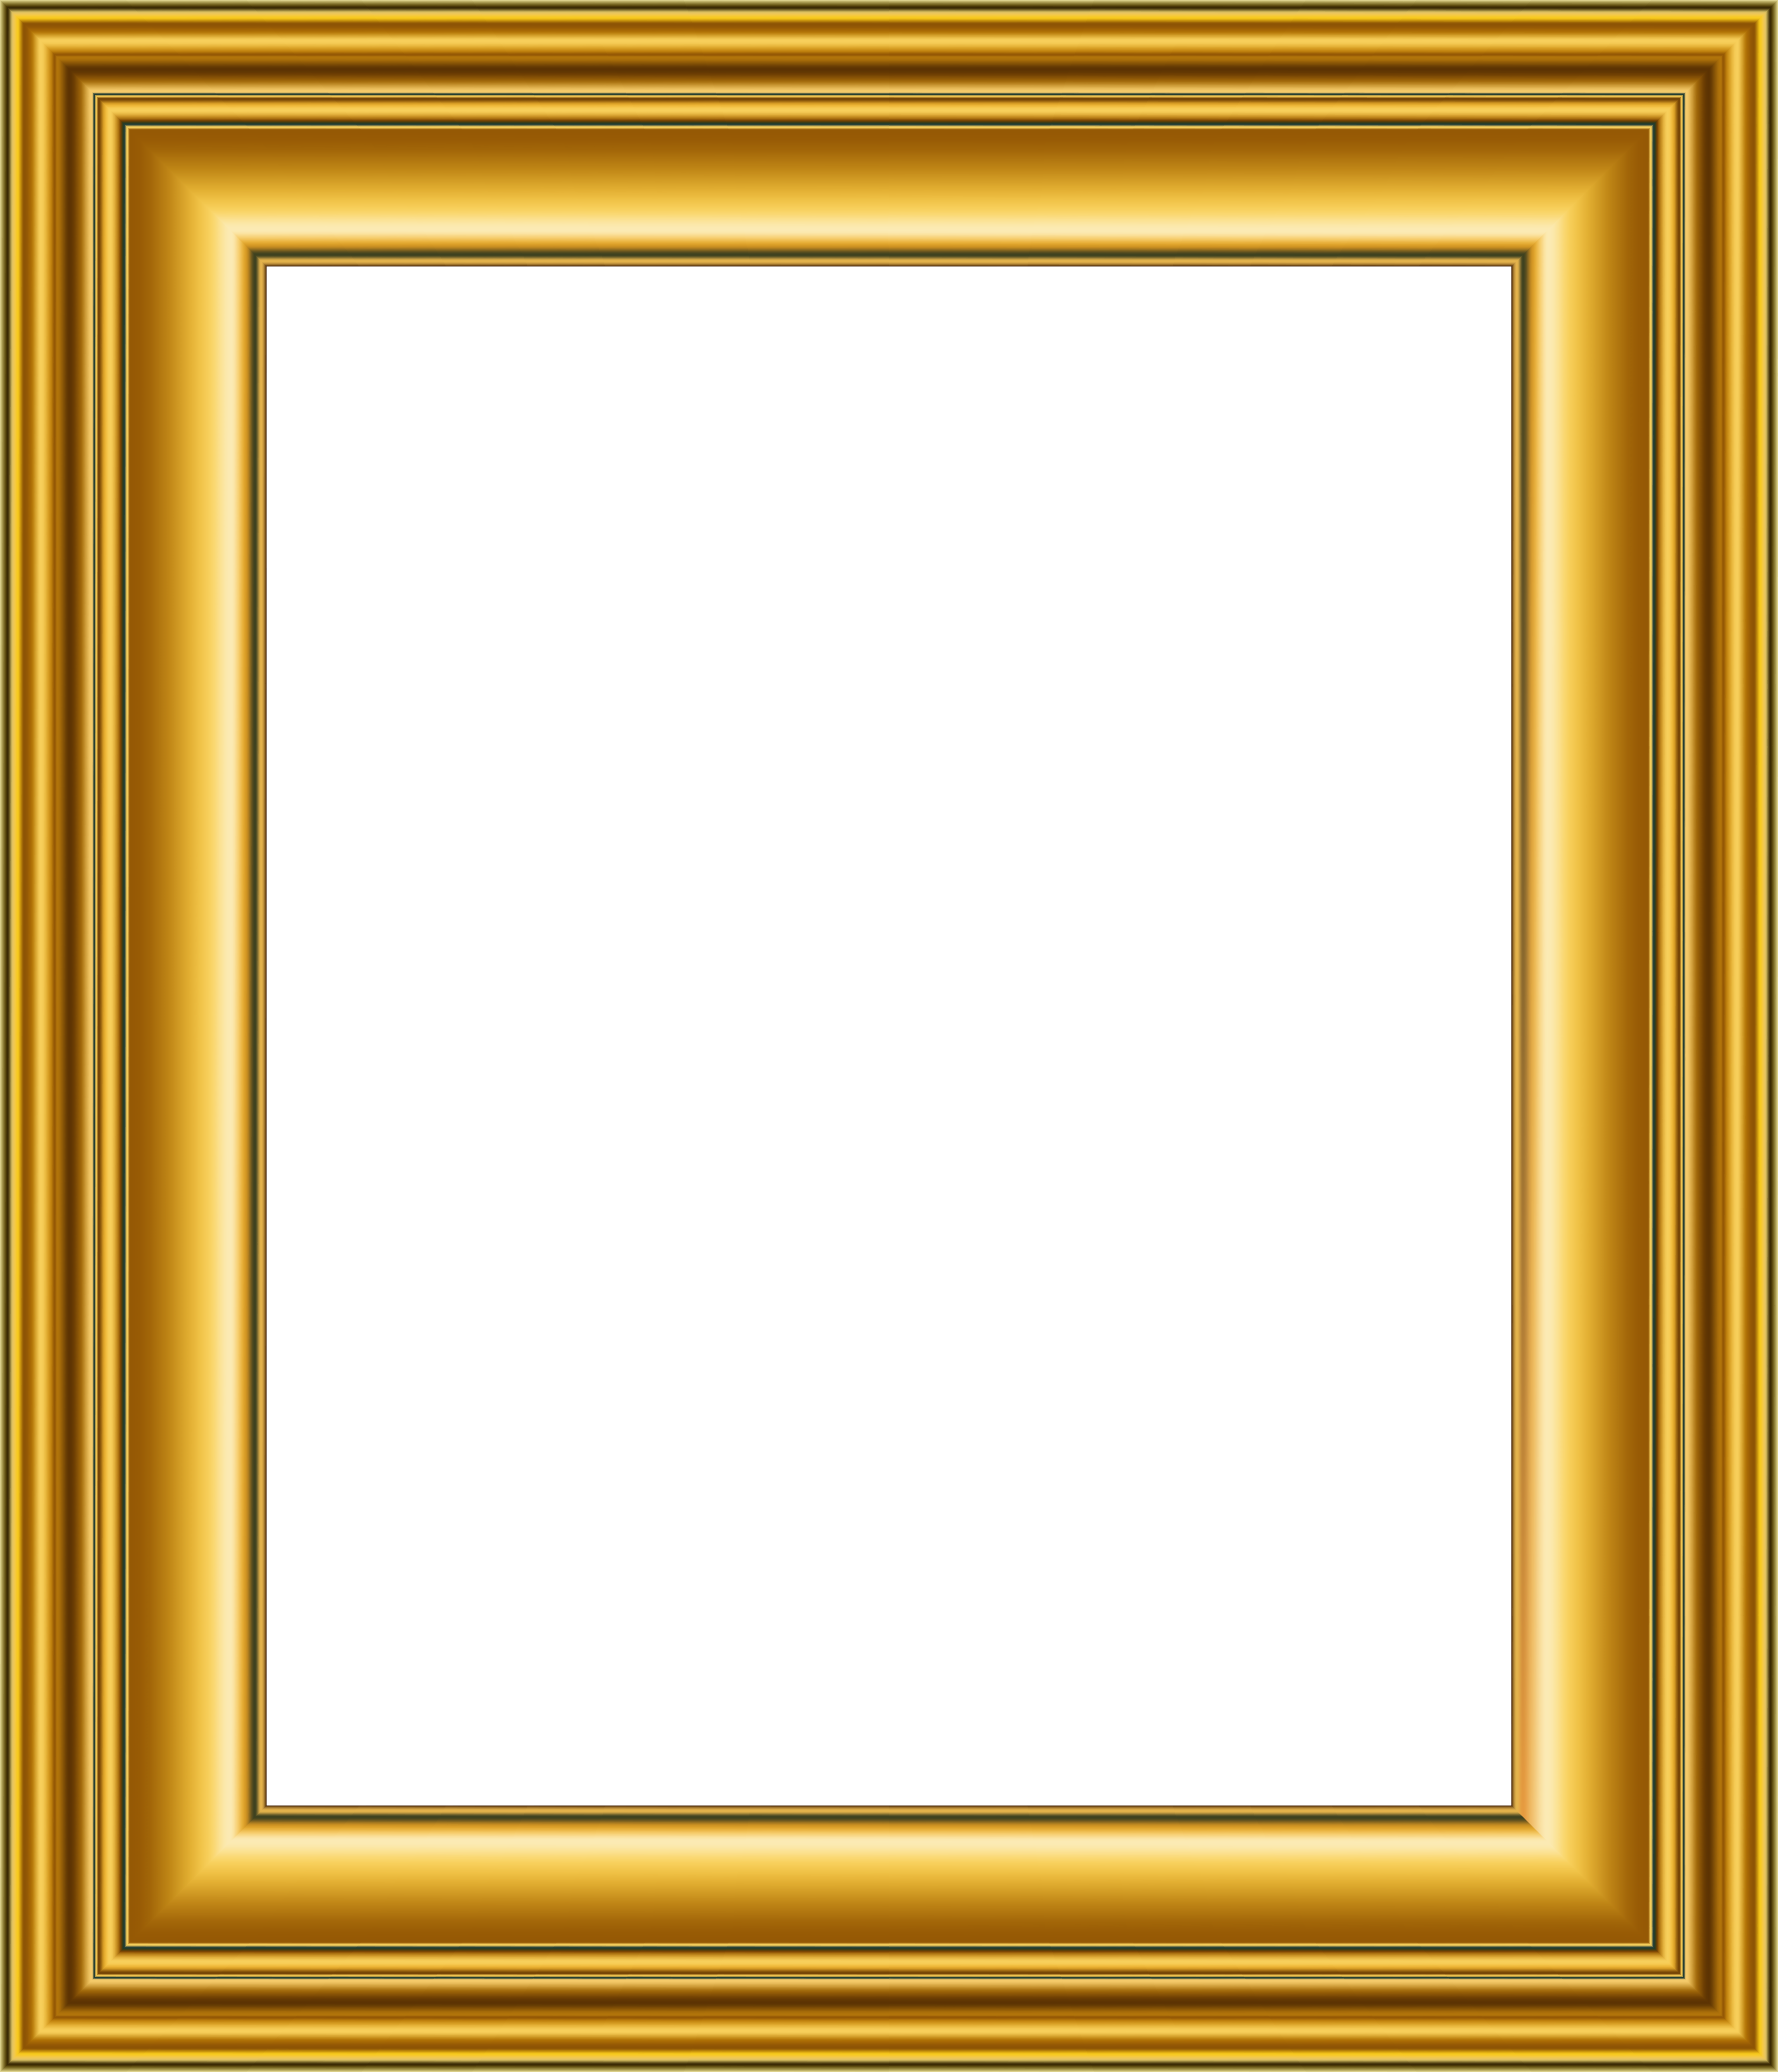 frame Love it frame it let's go offline and display favorite pictures on a real wall for a change we have a huge assortment of ready-to-hang prints, or you could frame personal photos, artwork and collected objects to surround yourself with smile-inducing mementos.